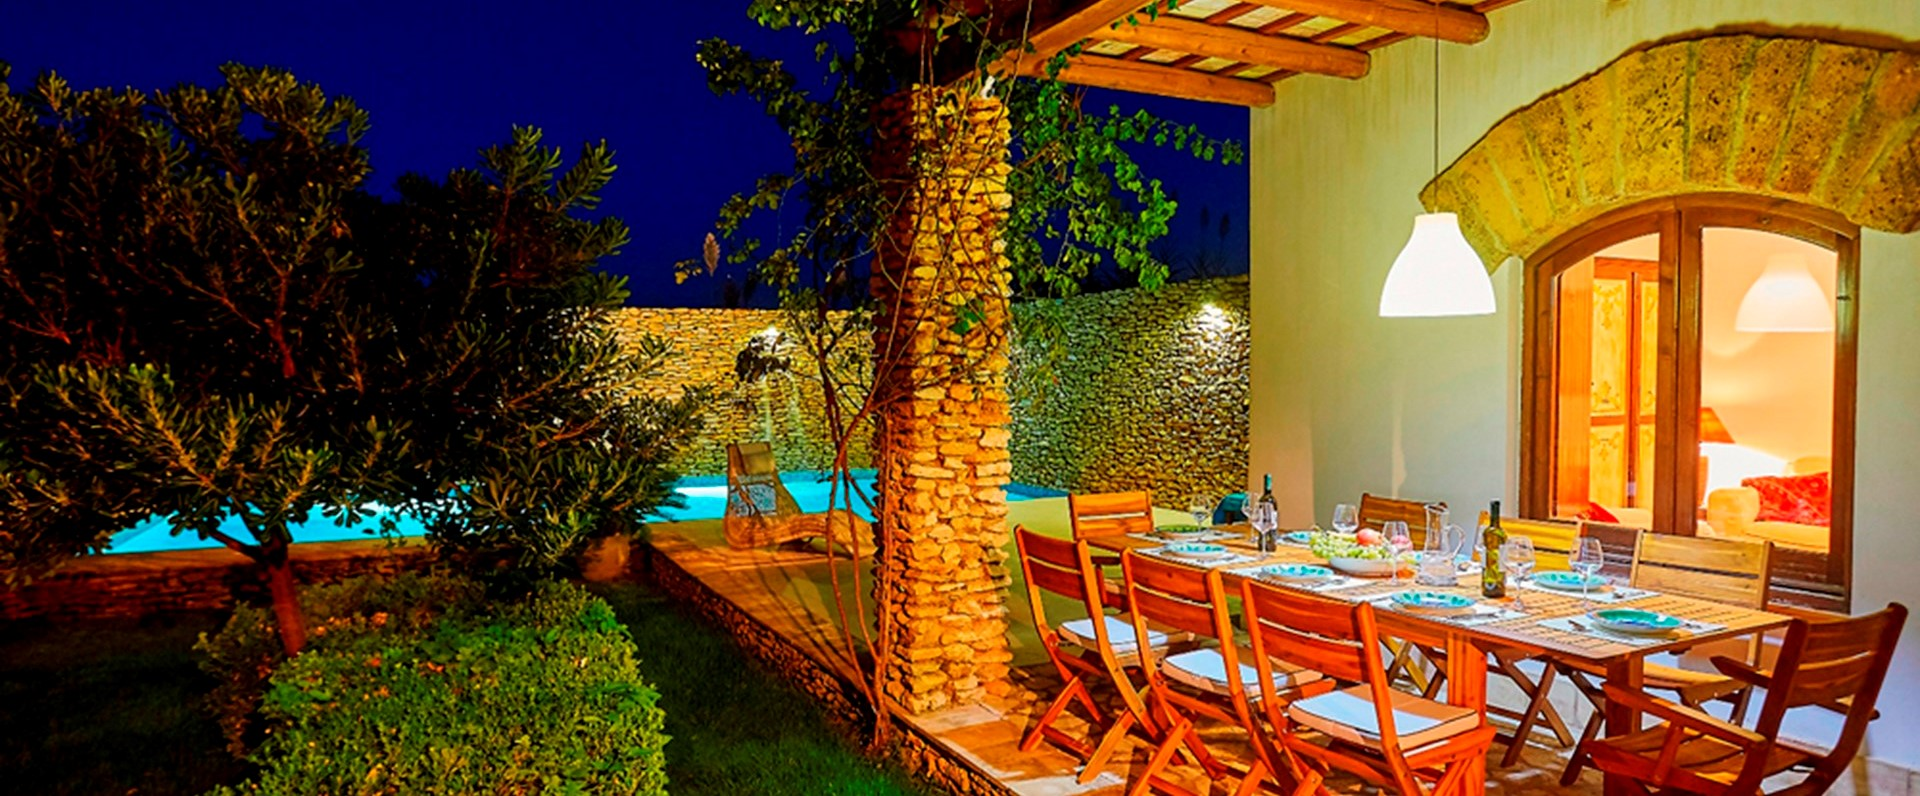 luxury-4-bedroom-family-villa-sicily